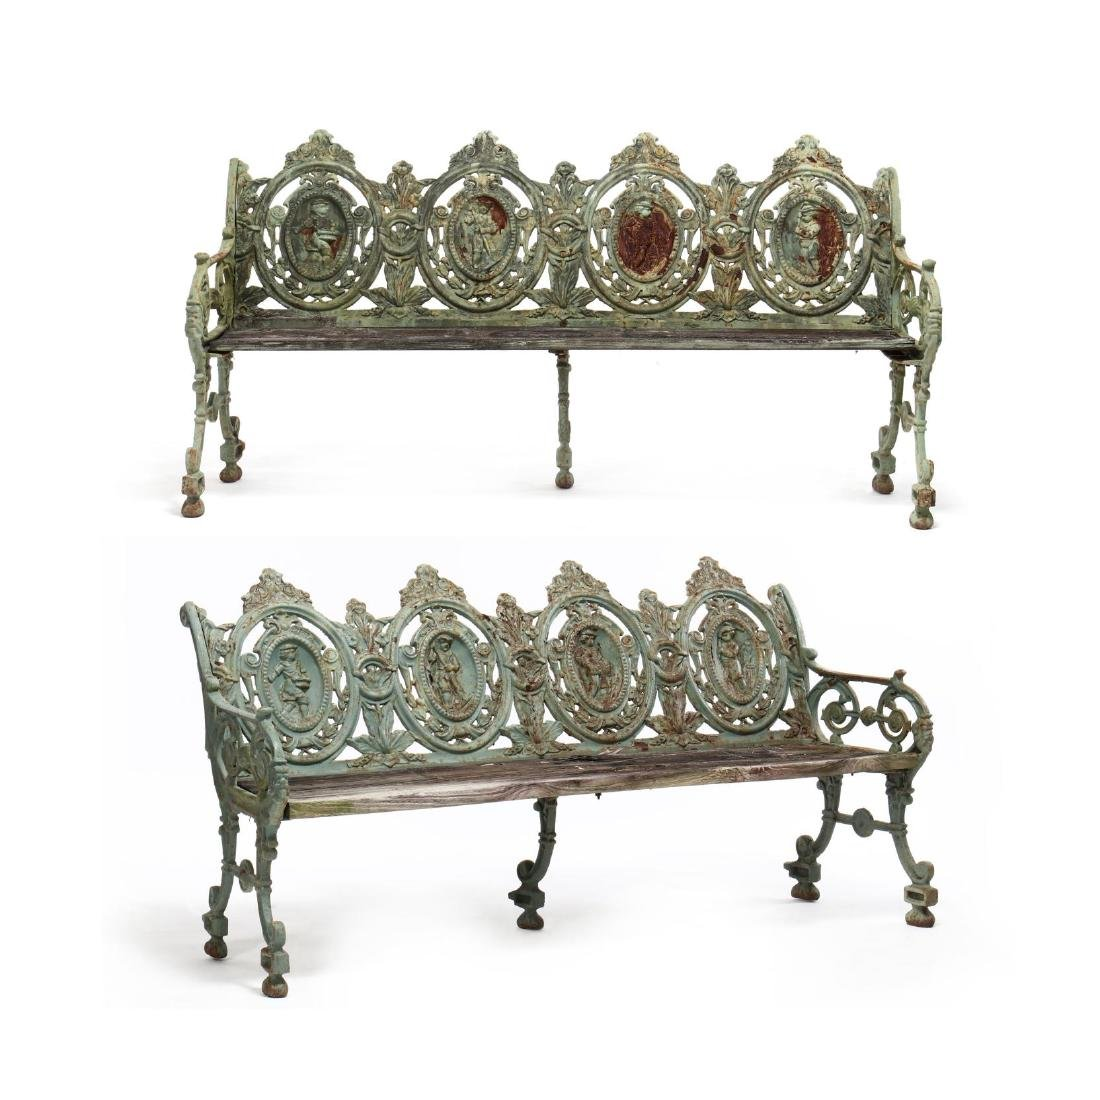 Pair of Renaissance Revival Cast Iron Garden Benches